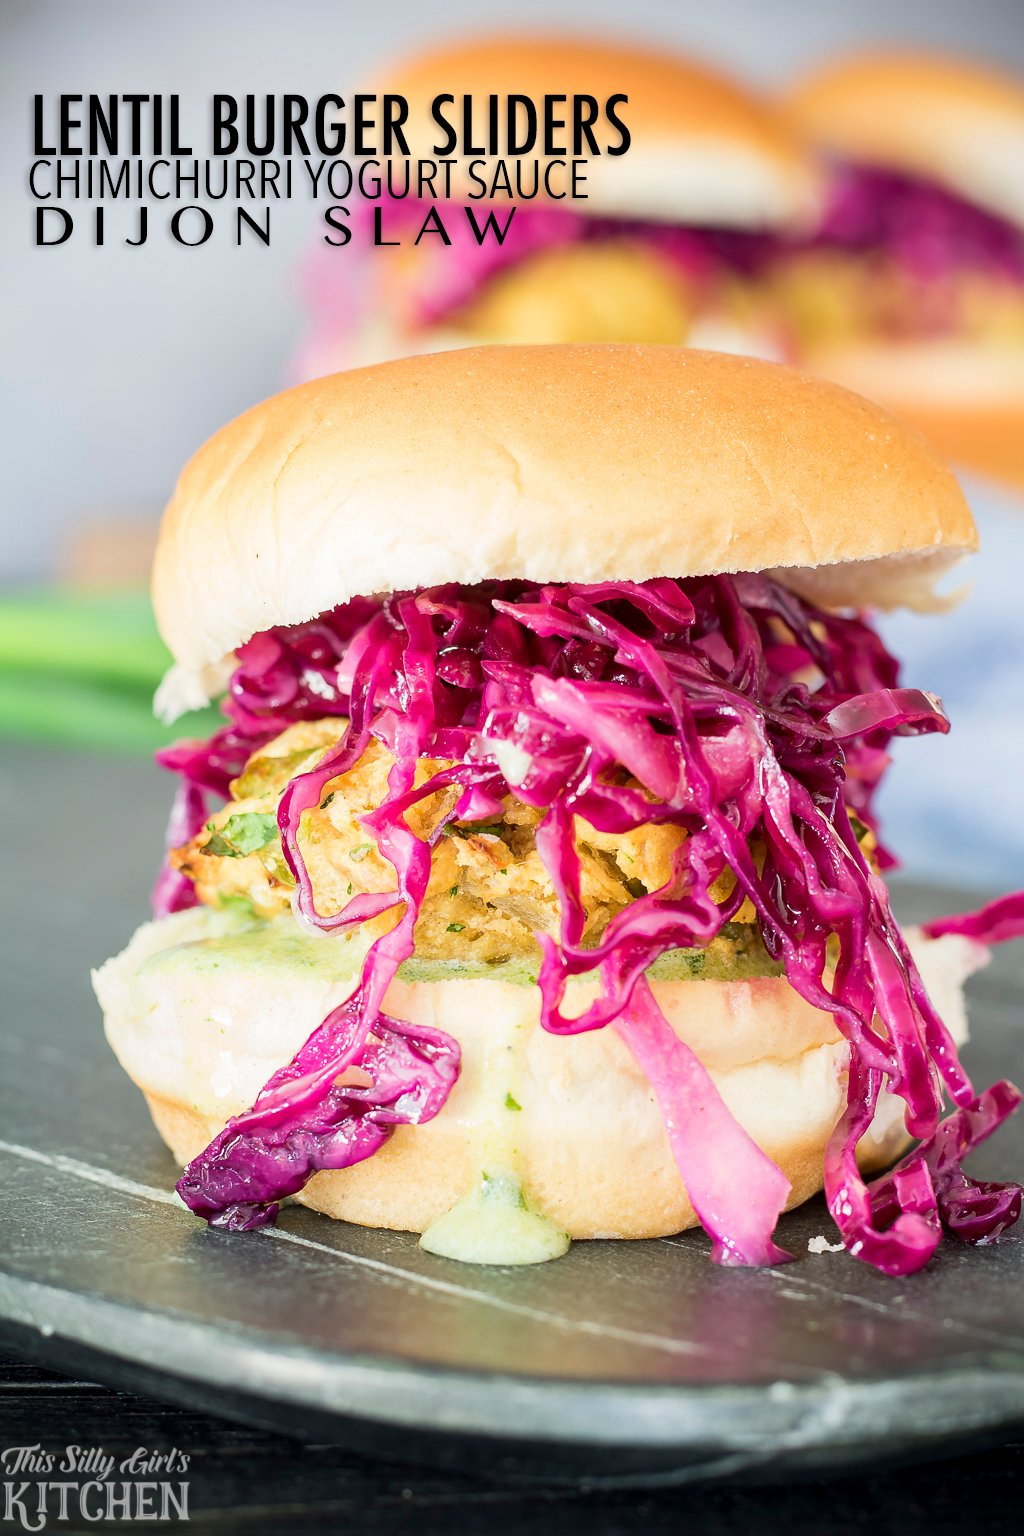 Lentil Burger Sliders with chimichurri yogurt sauce and dijon slaw, yum! Recipe from ThisSillyGirlsKitchen.com